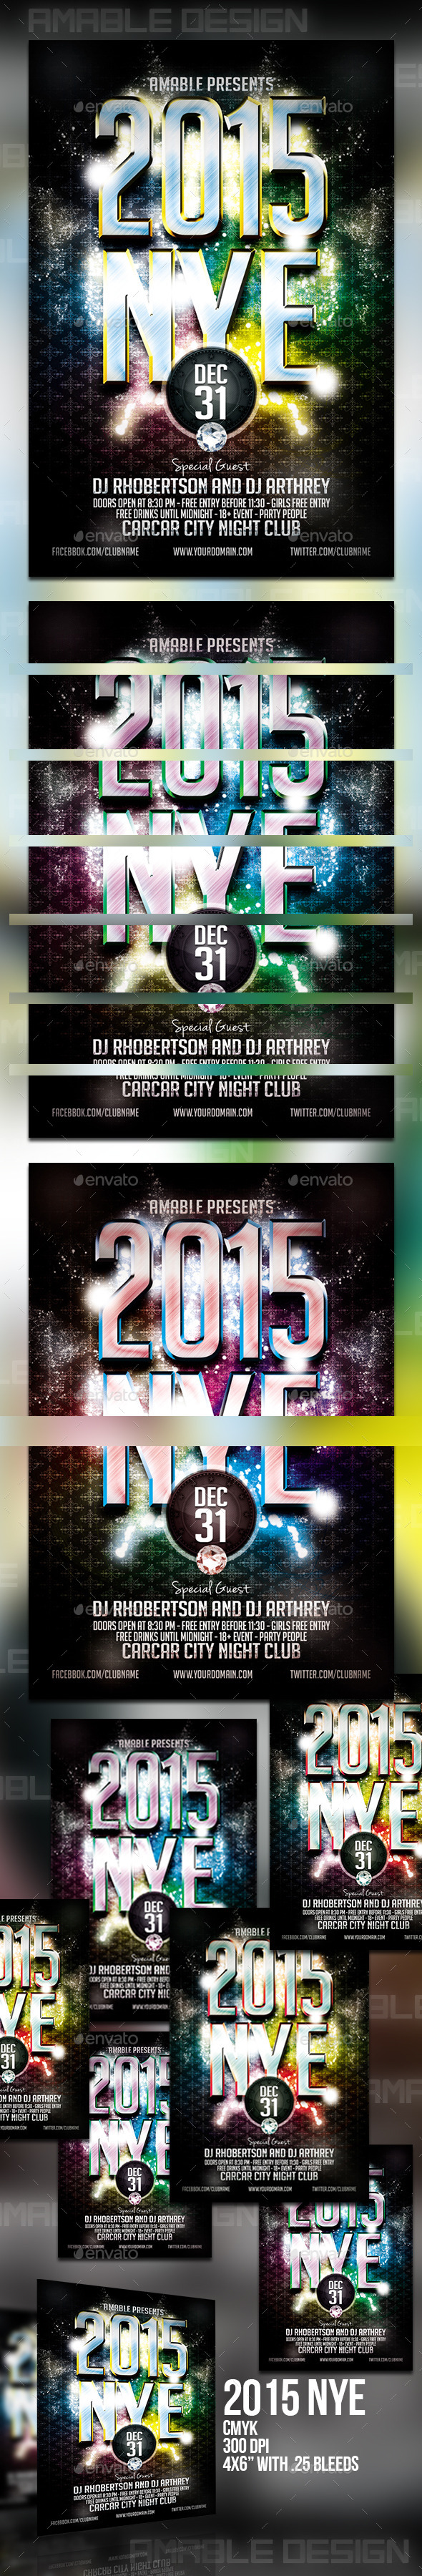 GraphicRiver 2015 NYE Flyer 9868910